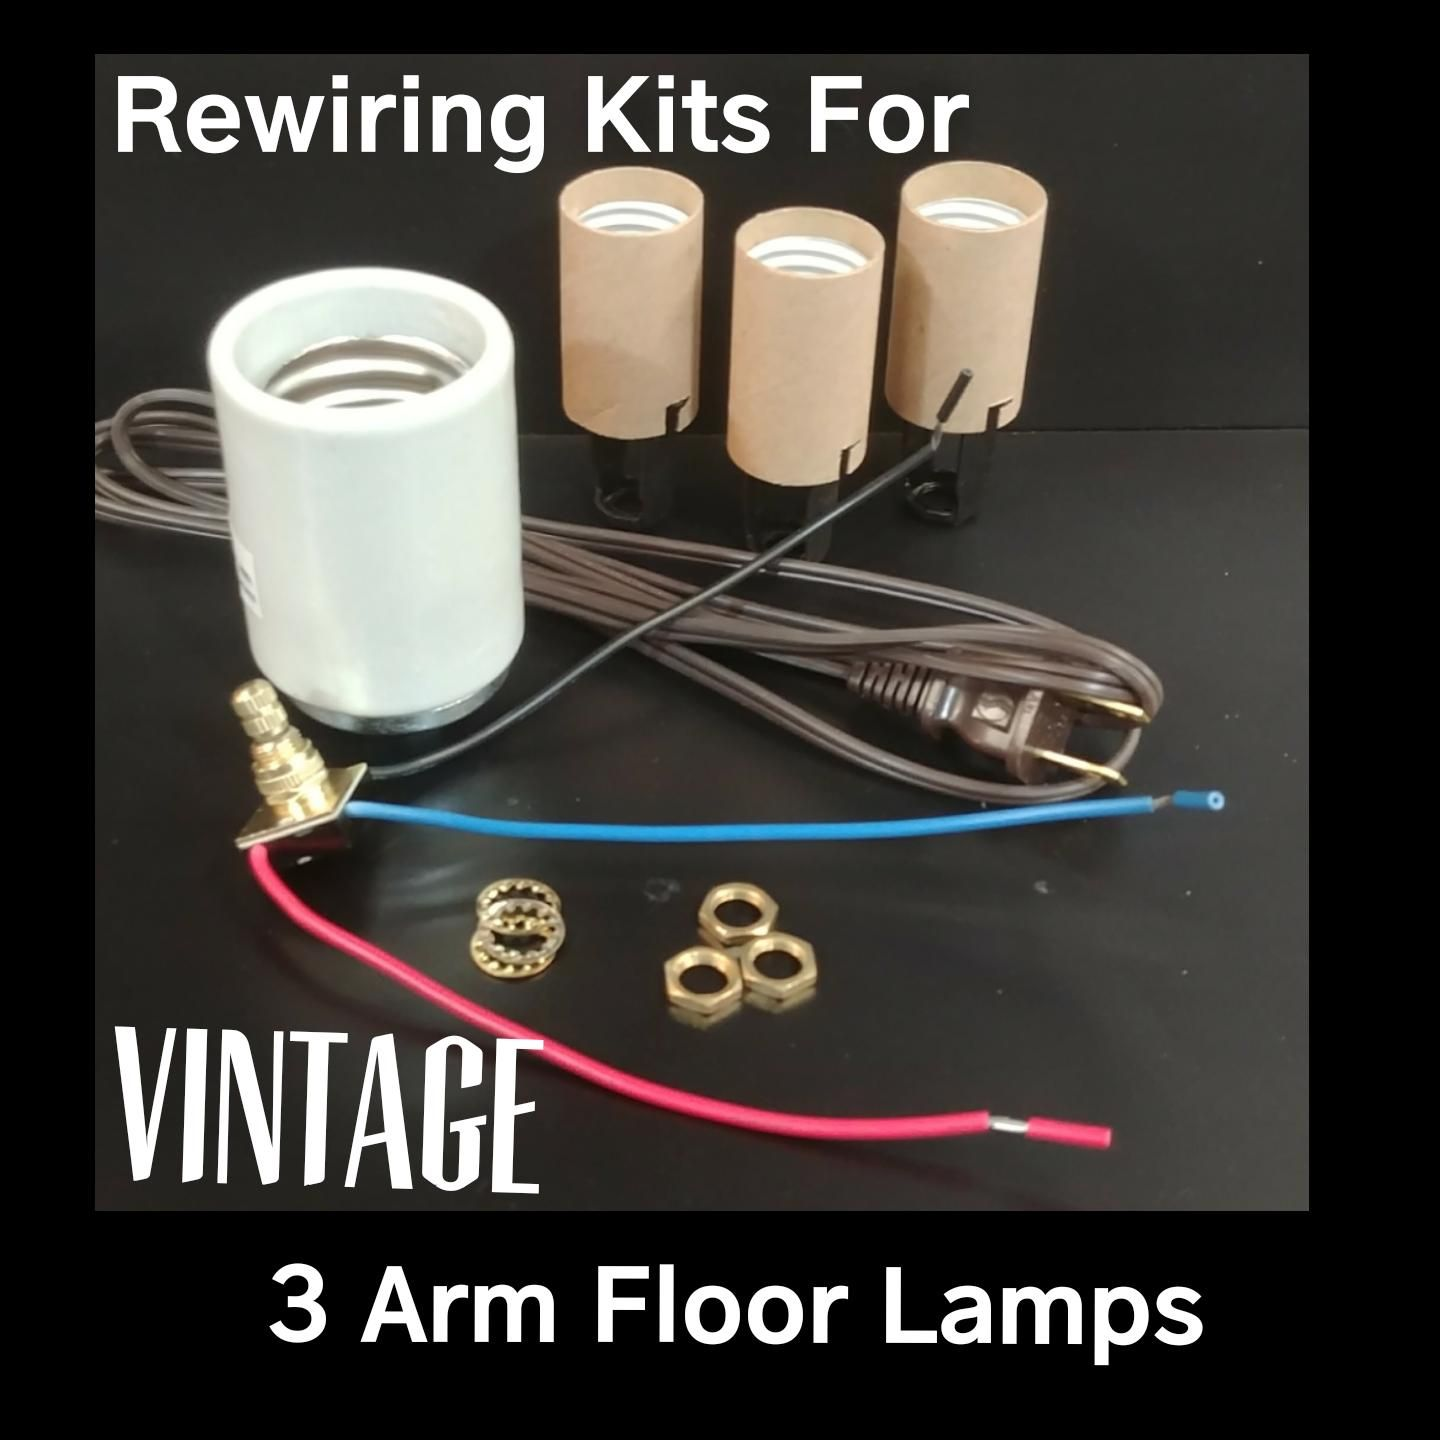 Lamp Rewiring Kits for Vintage 3-Arm Floor Lamps with Complete Diagrams and  Instructions! | Arm floor lamp, Floor lamp, Vintage floor lampPinterest